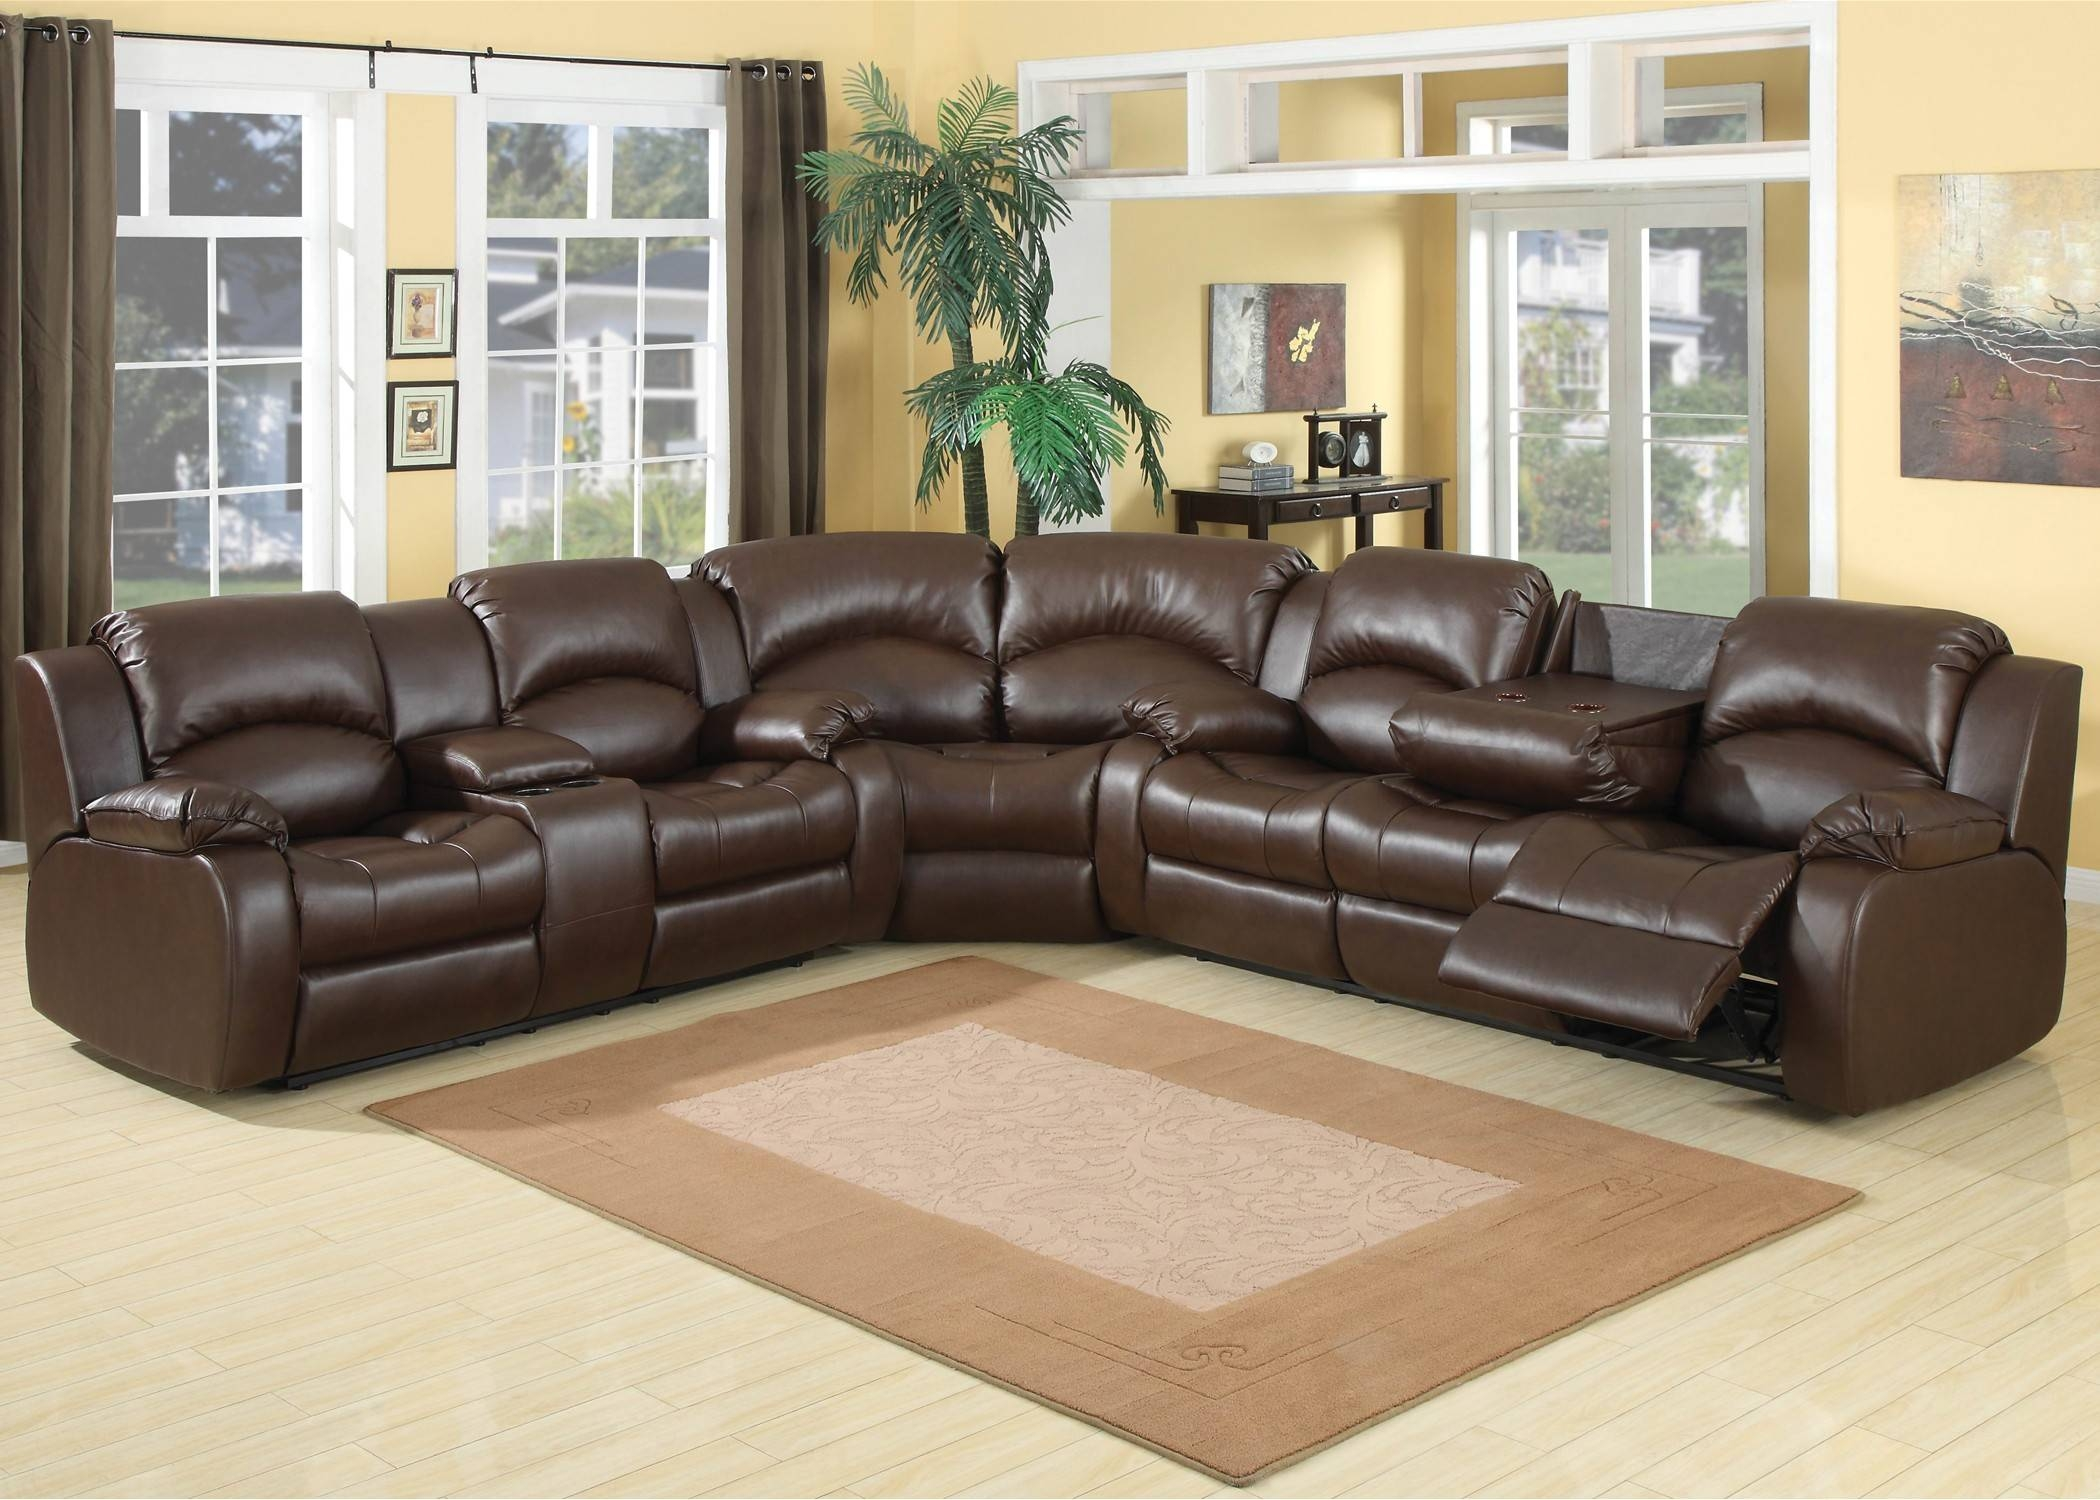 Sofas Center : Reclining Sectional Sofas South Florida Grey Sofa in 6 Piece Leather Sectional Sofa (Image 26 of 30)